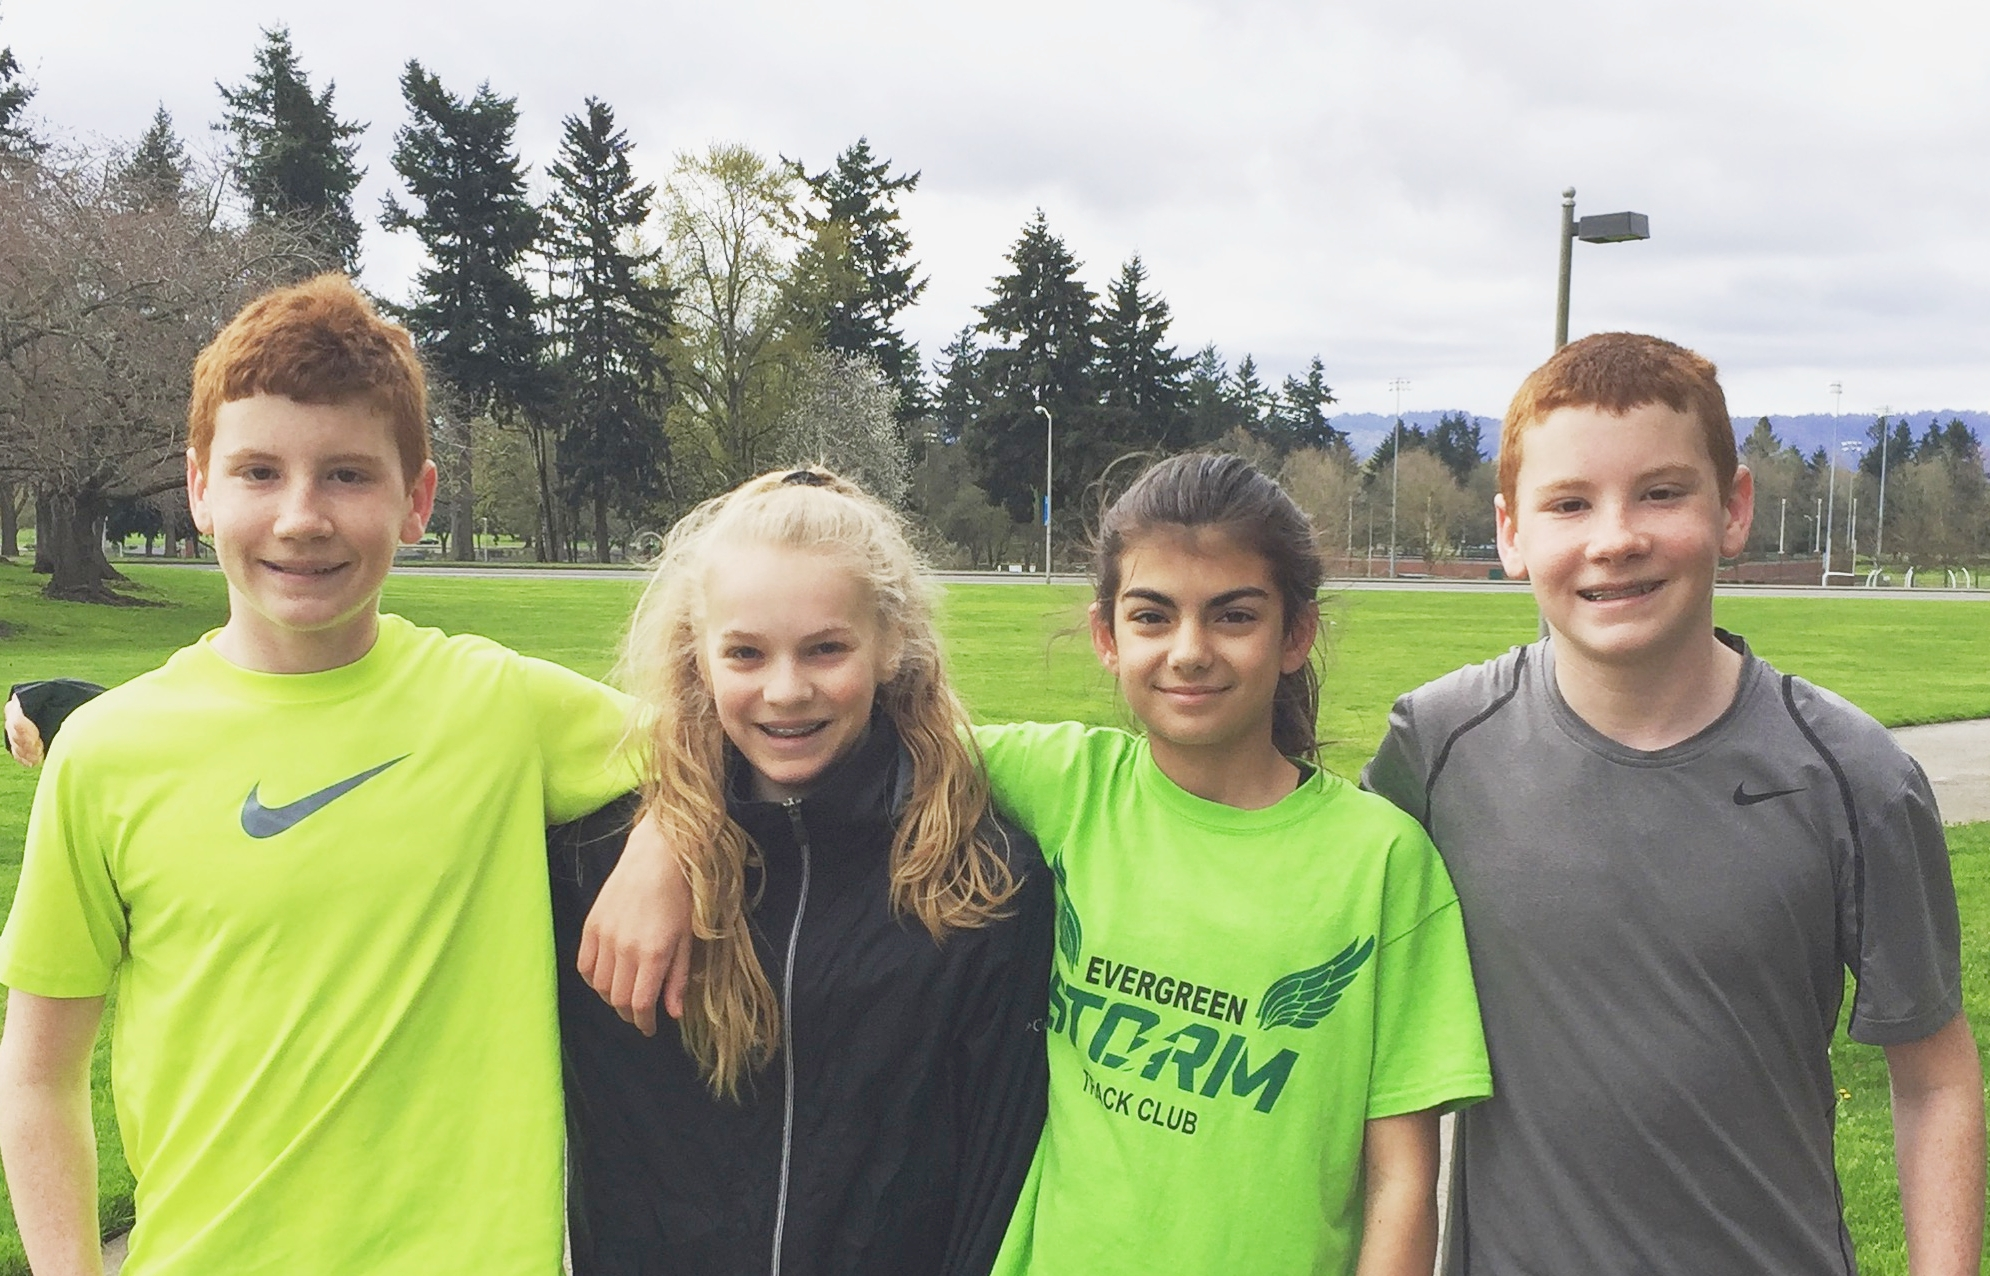 Okay, haha, very funny, Kiley's sporting an Evergreen Storm Running Club shirt. This was a little joke they played on Coach Dave, which captured the spirit of what Whisper Running is truly about - participating in a healthy hobby and having fun!